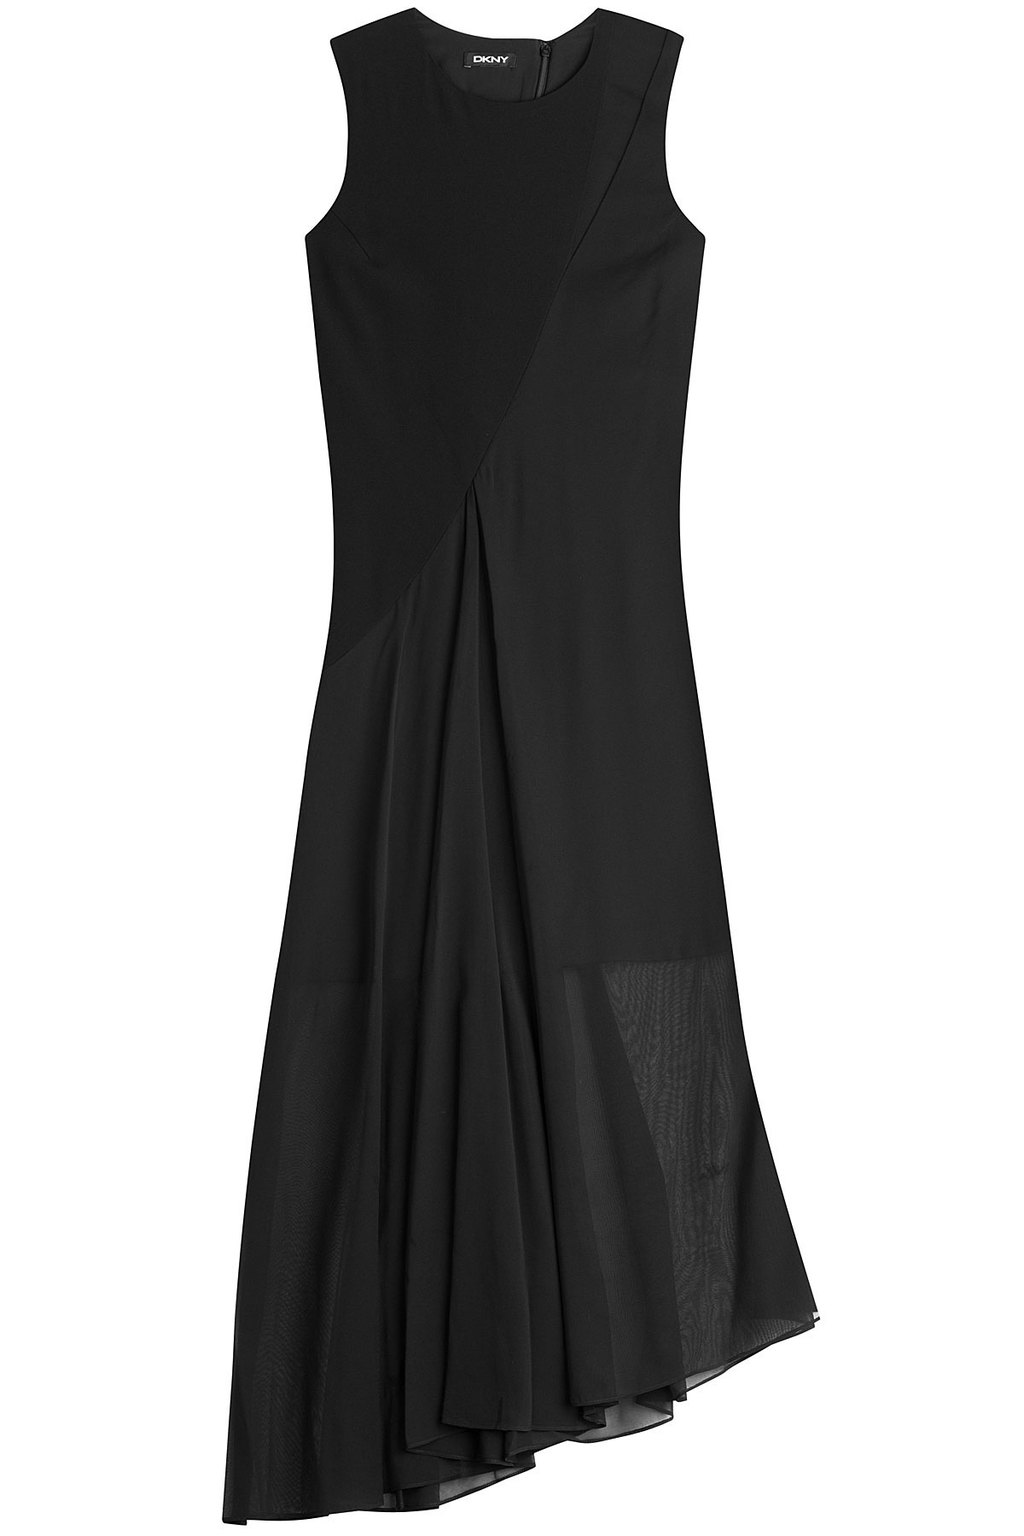 Asymmetric Dress - length: below the knee; sleeve style: strapless; predominant colour: black; fit: body skimming; style: asymmetric (hem); neckline: crew; sleeve length: sleeveless; texture group: other - light to midweight; season: a/w 2015; wardrobe: highlight